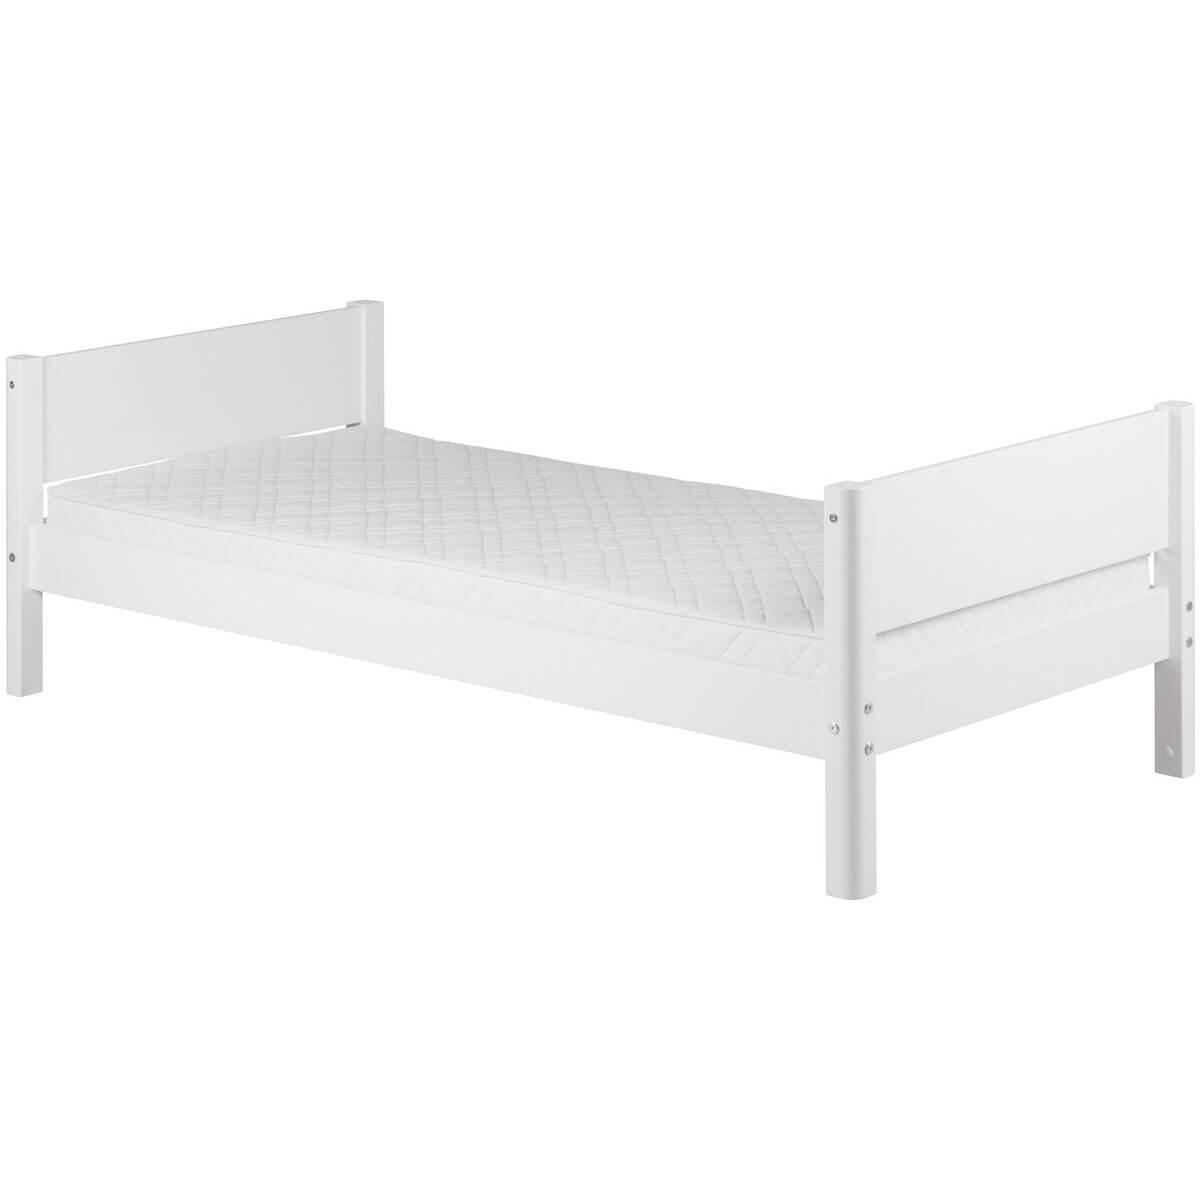 WHITE by Flexa Lit simple 90x190 cm en MDF avec pieds blanc